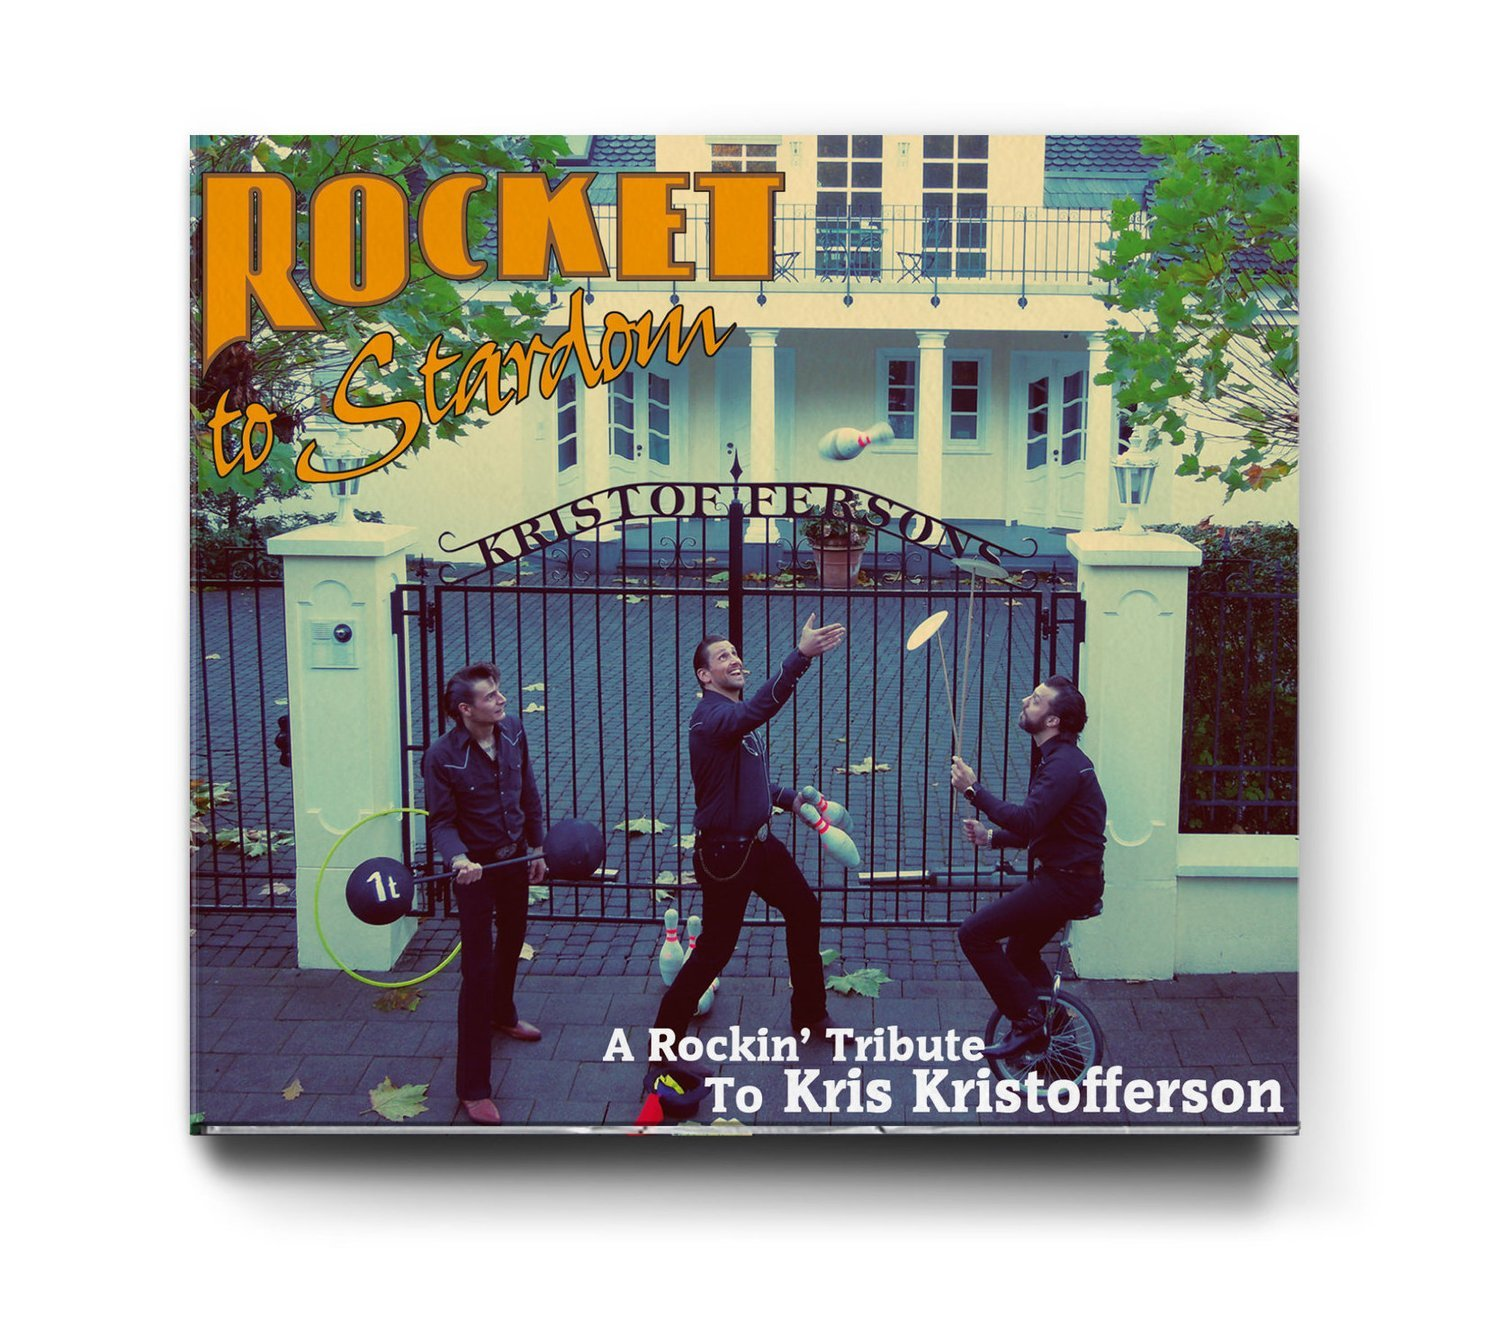 Rocket to Stardom - A Rockin' Tribute to Kris Kristofferson - CD